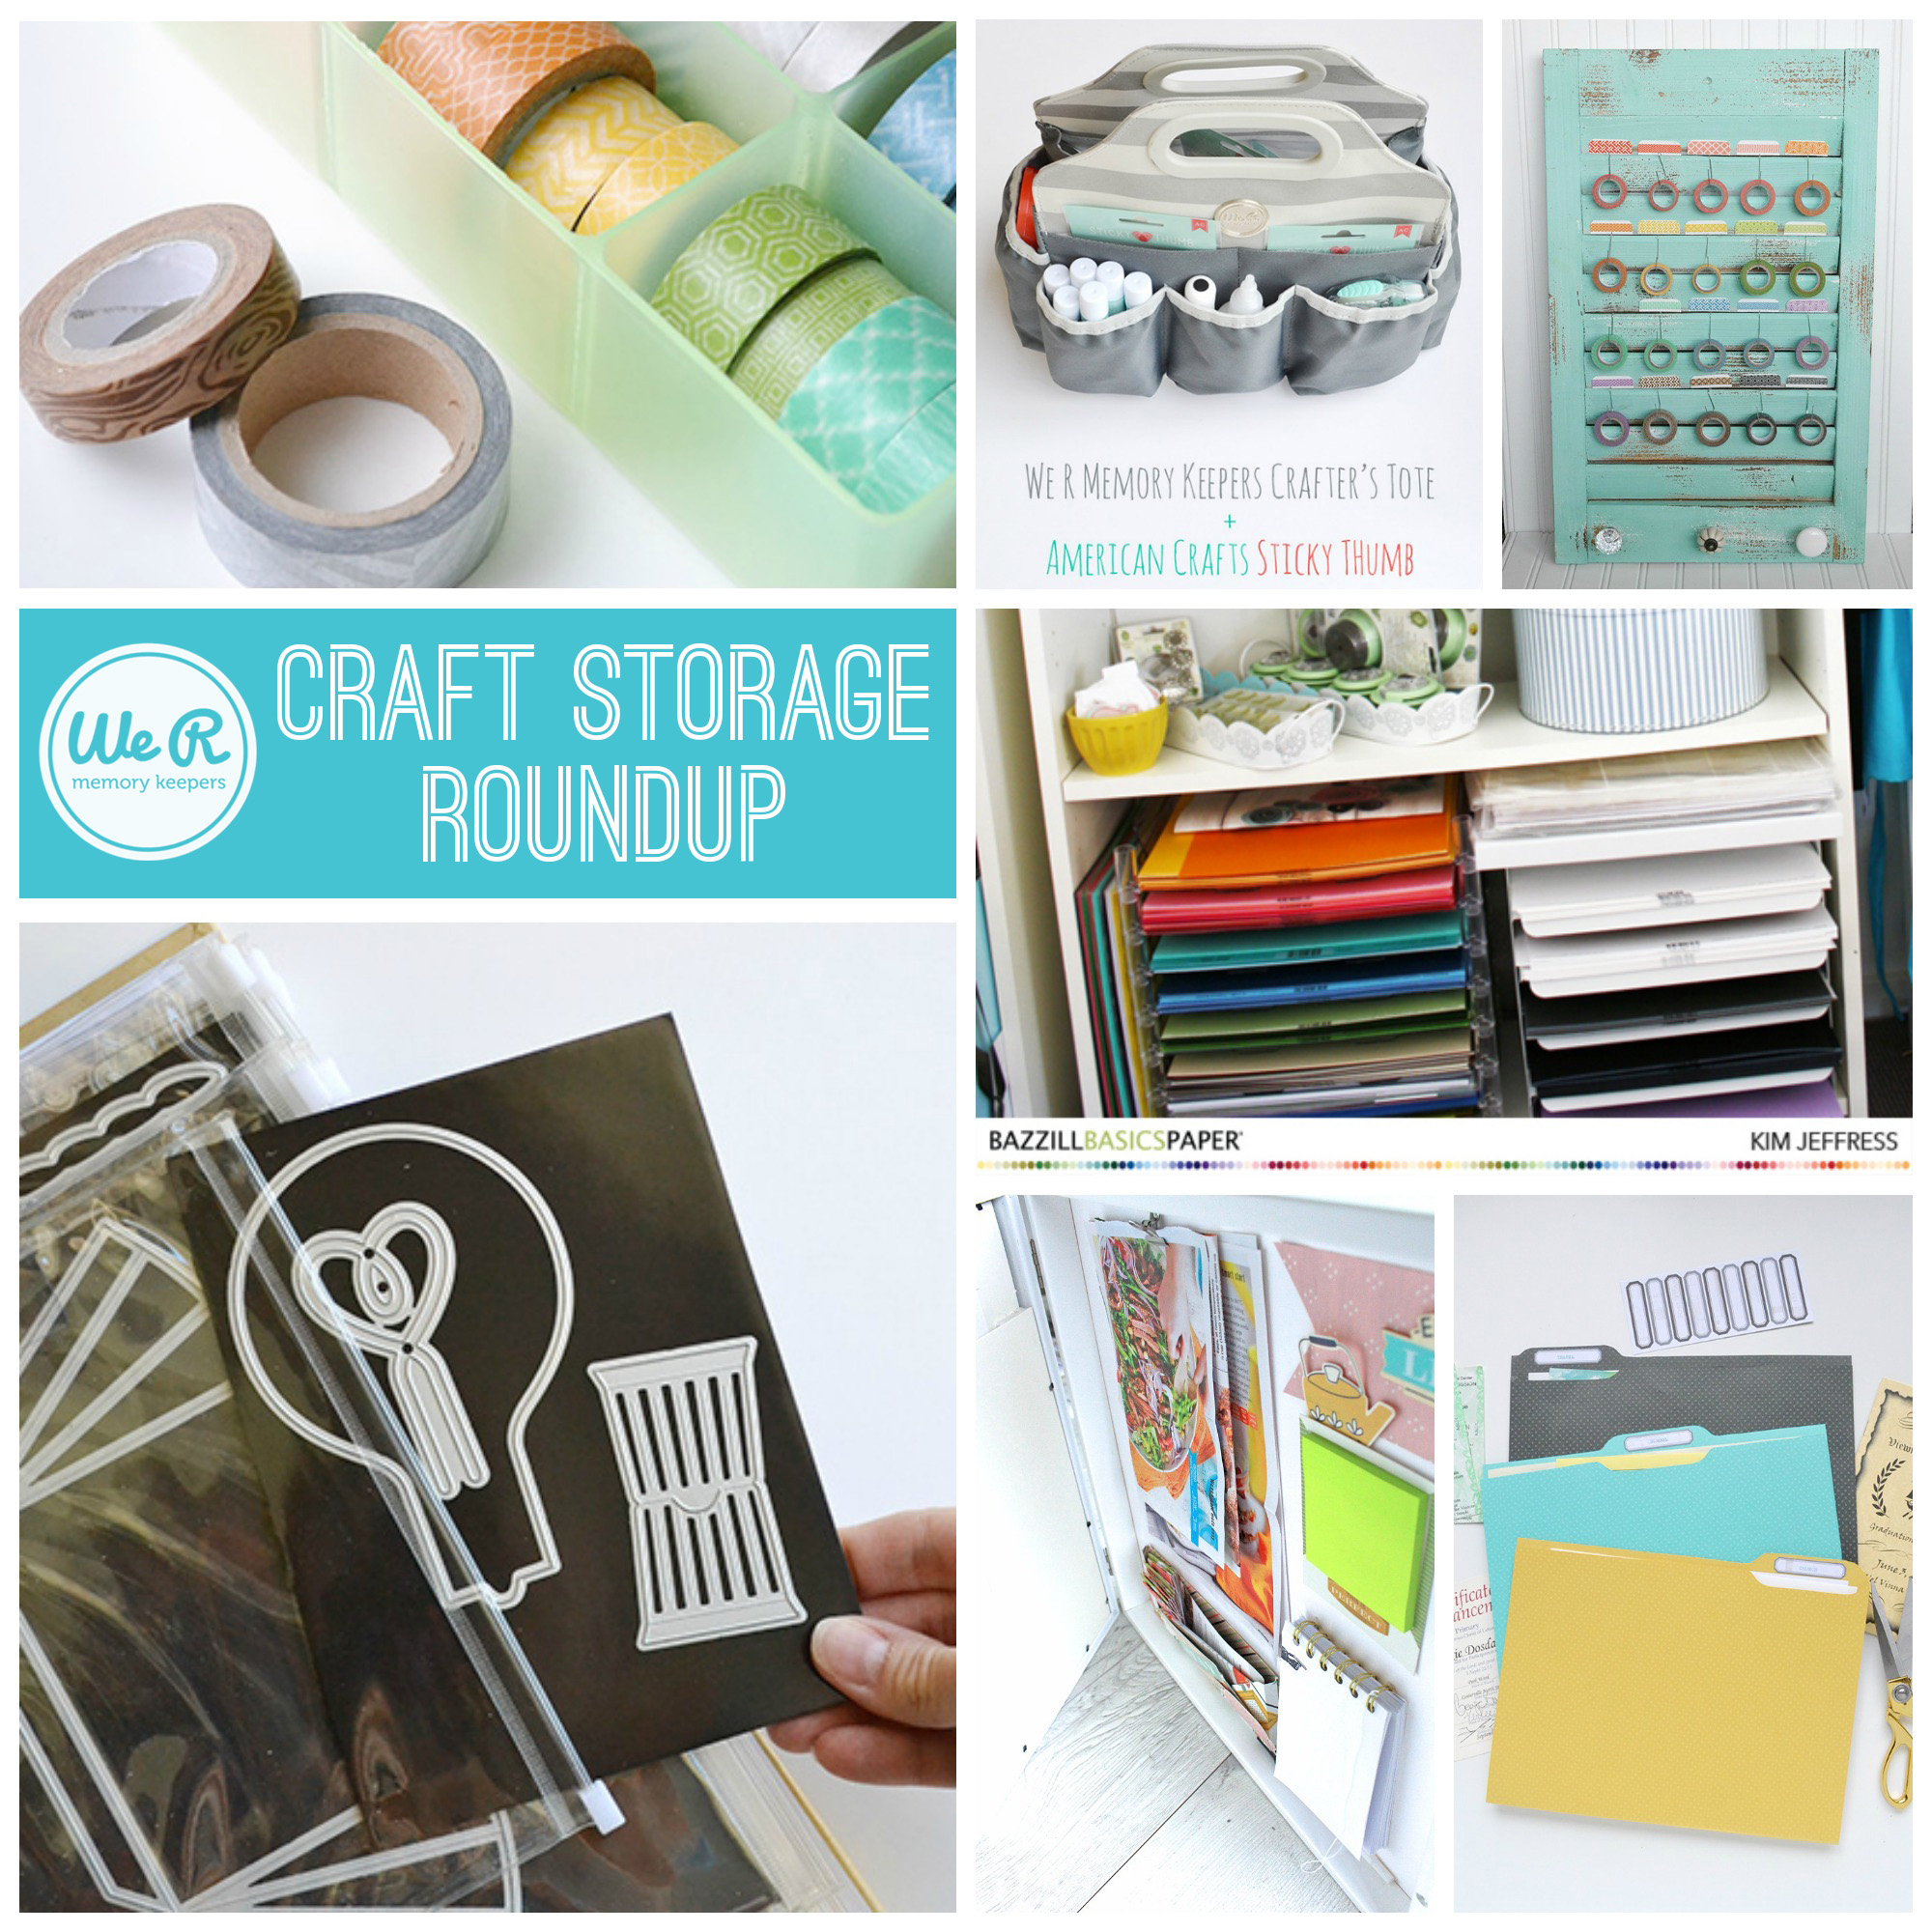 We R Memory Keepers Craft Storage Roundup